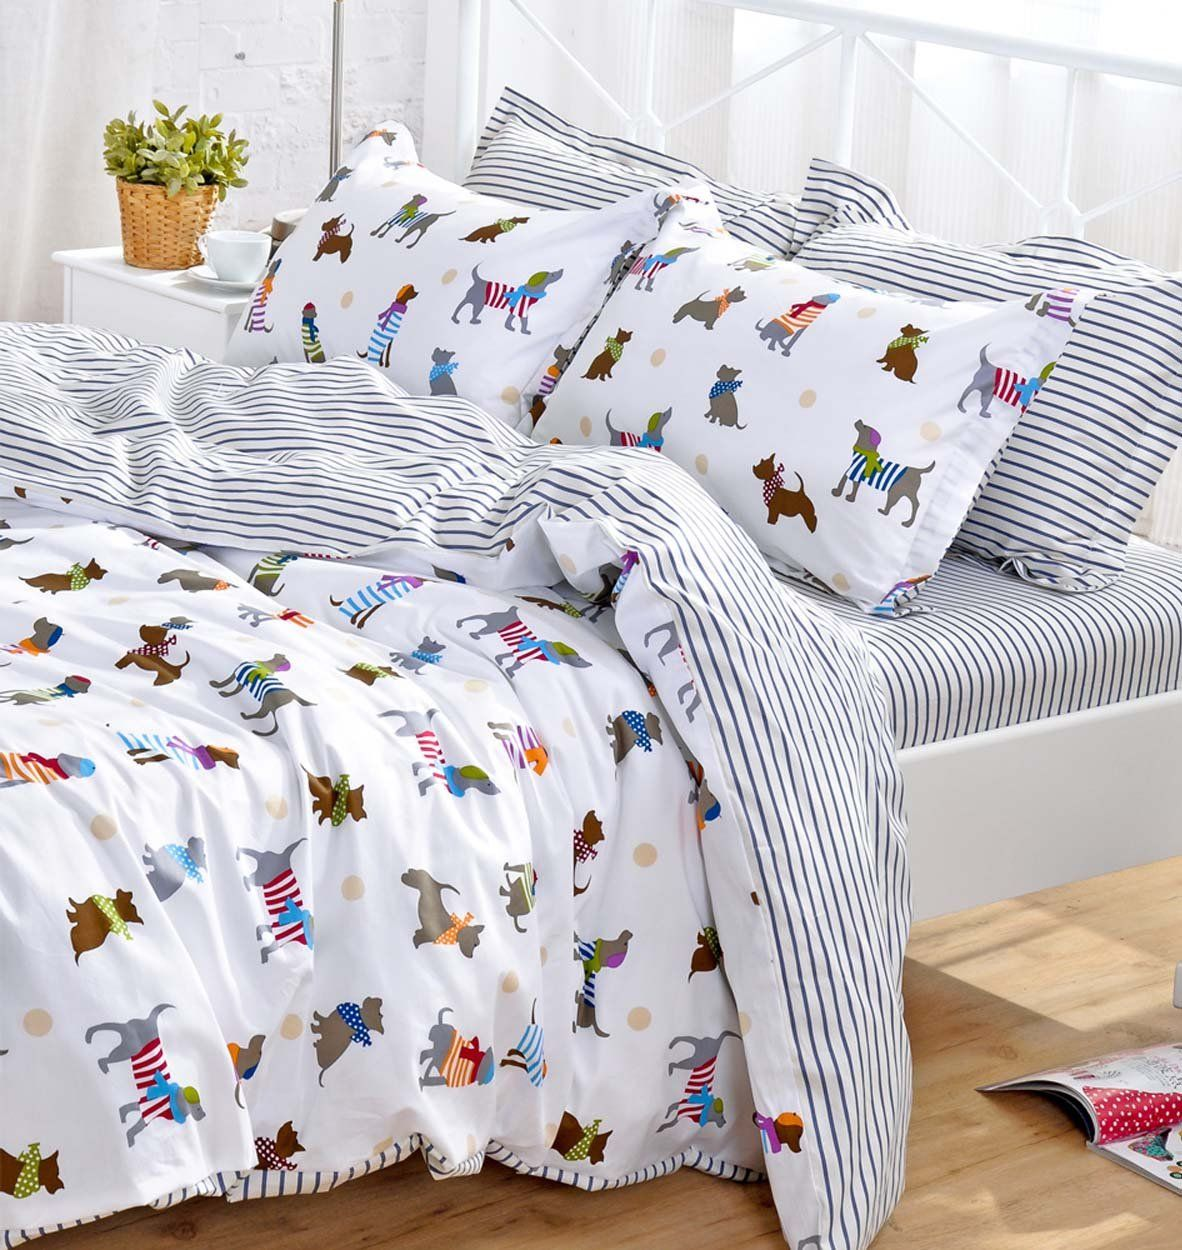 Yoyomall Cotton Cartoon Dog Bedding Set Cute Puppy Duvet